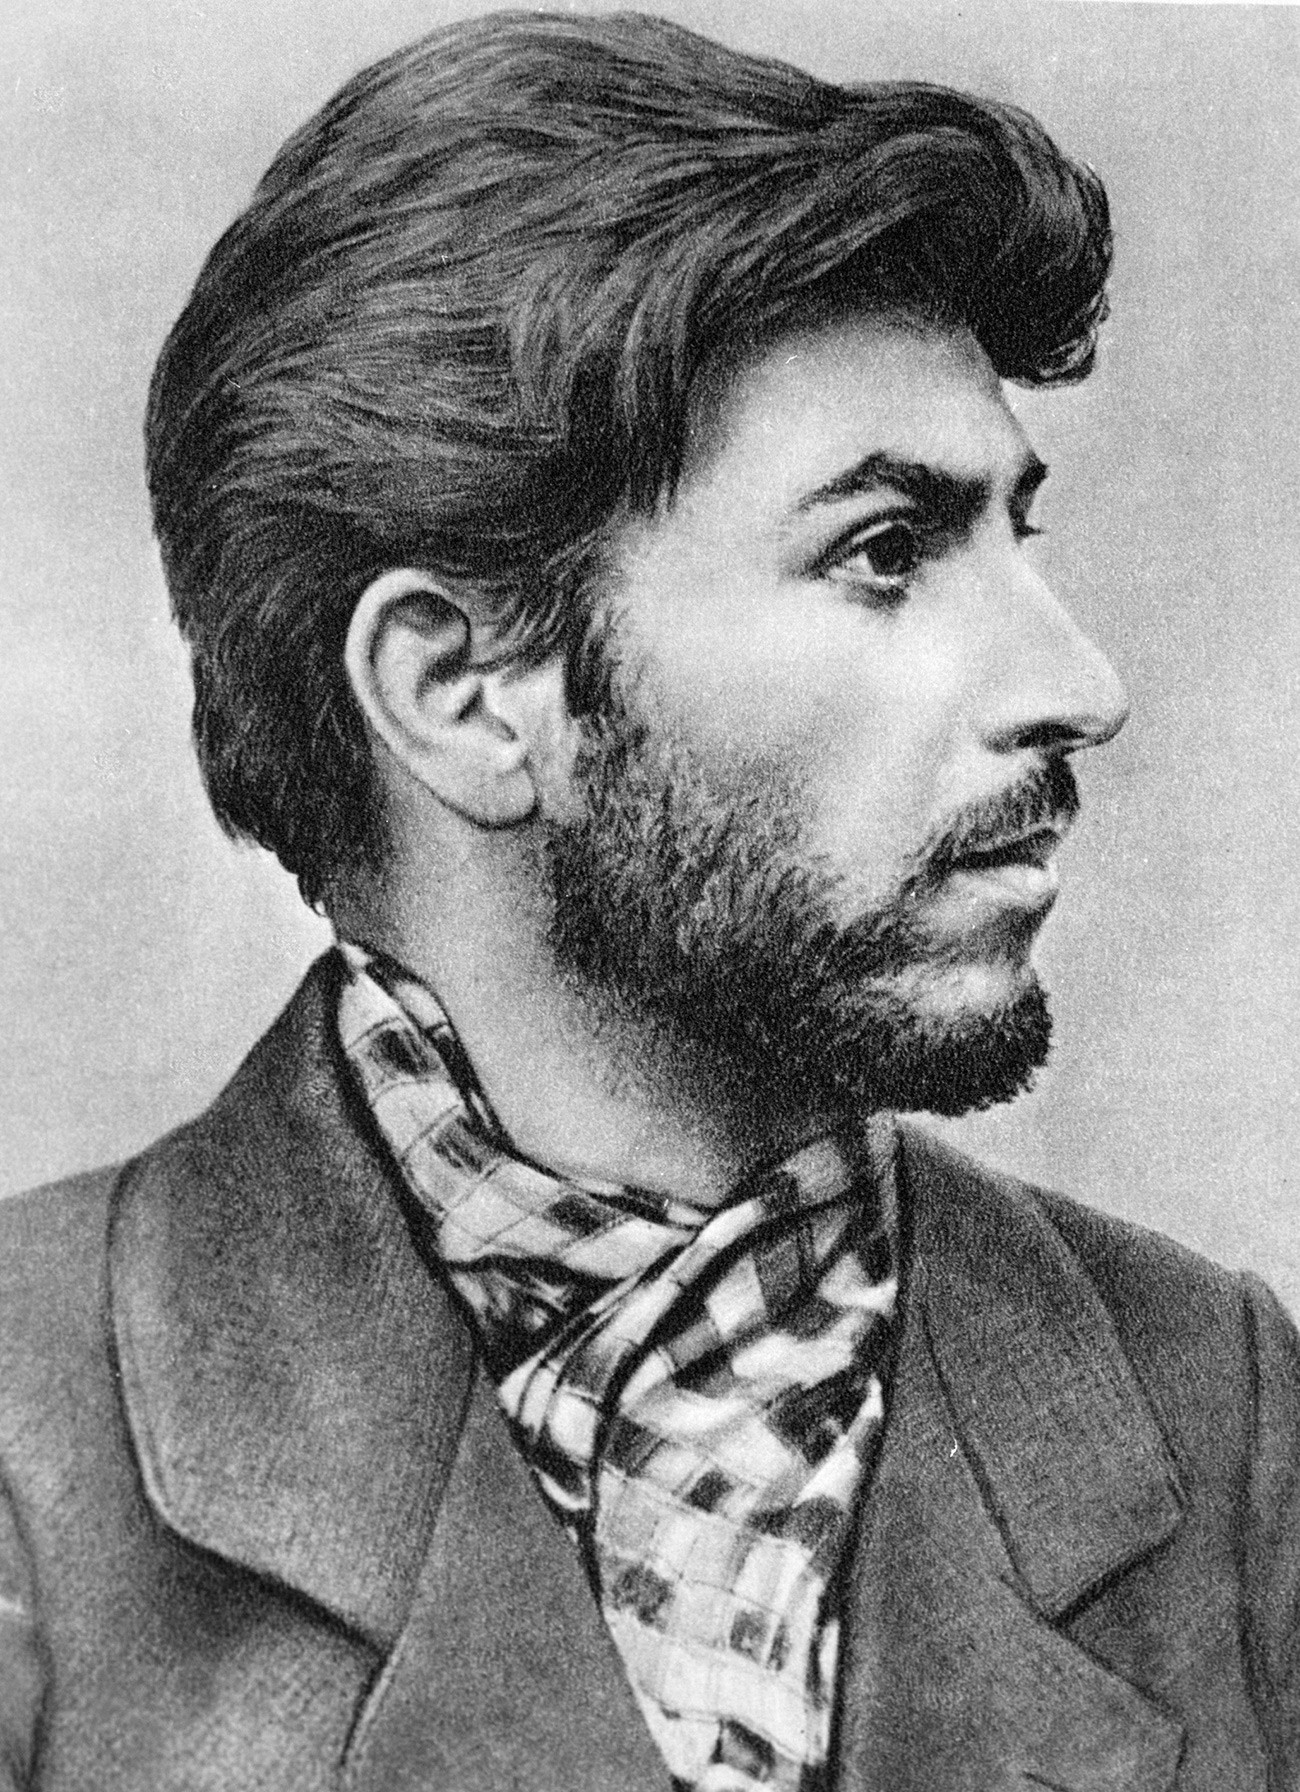 Stalin in his younger years.